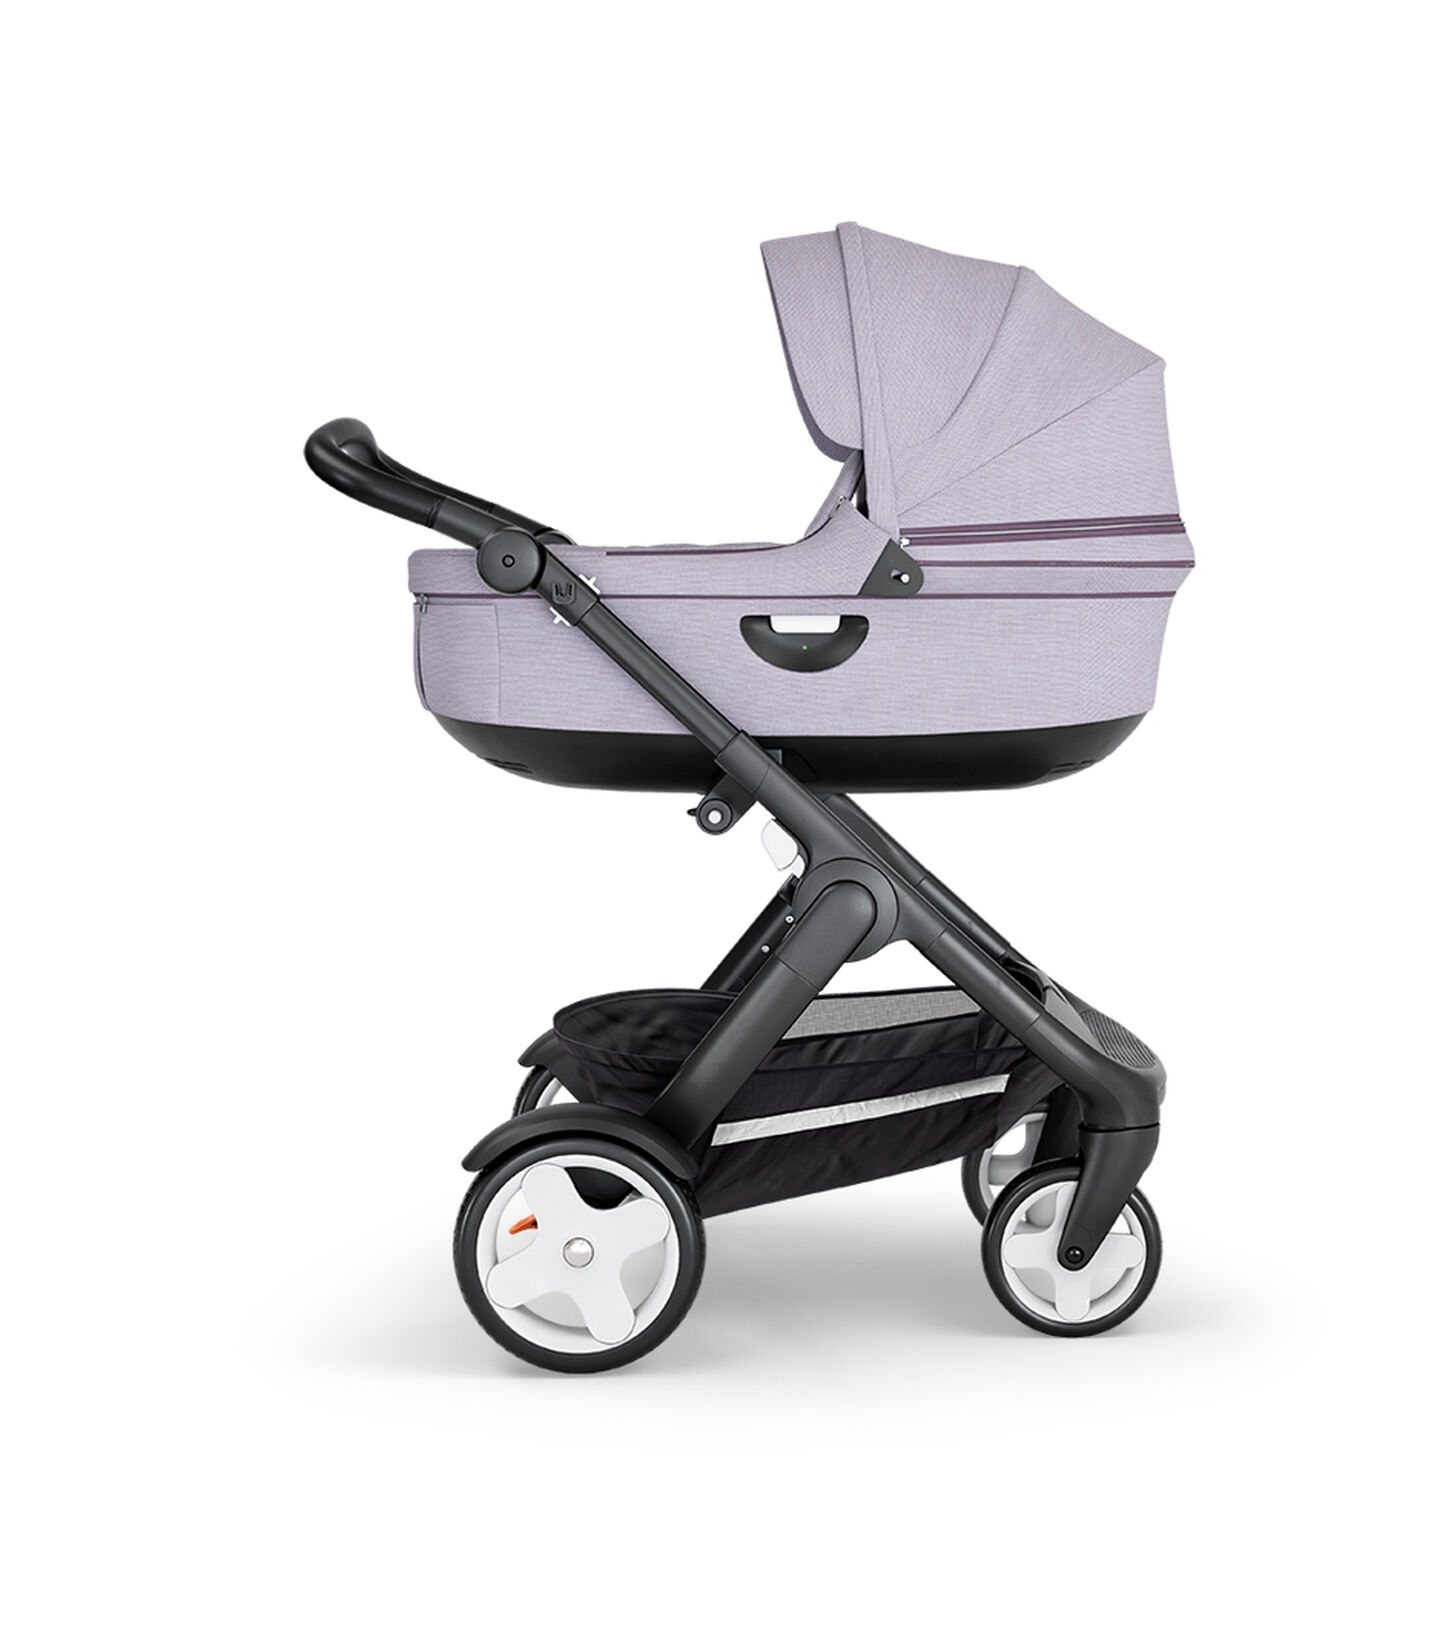 Stokke® Trailz™ with Black Chassis, Black Leatherette and Classic Wheels. Stokke® Stroller Carry Cot, Brushed Lilac.